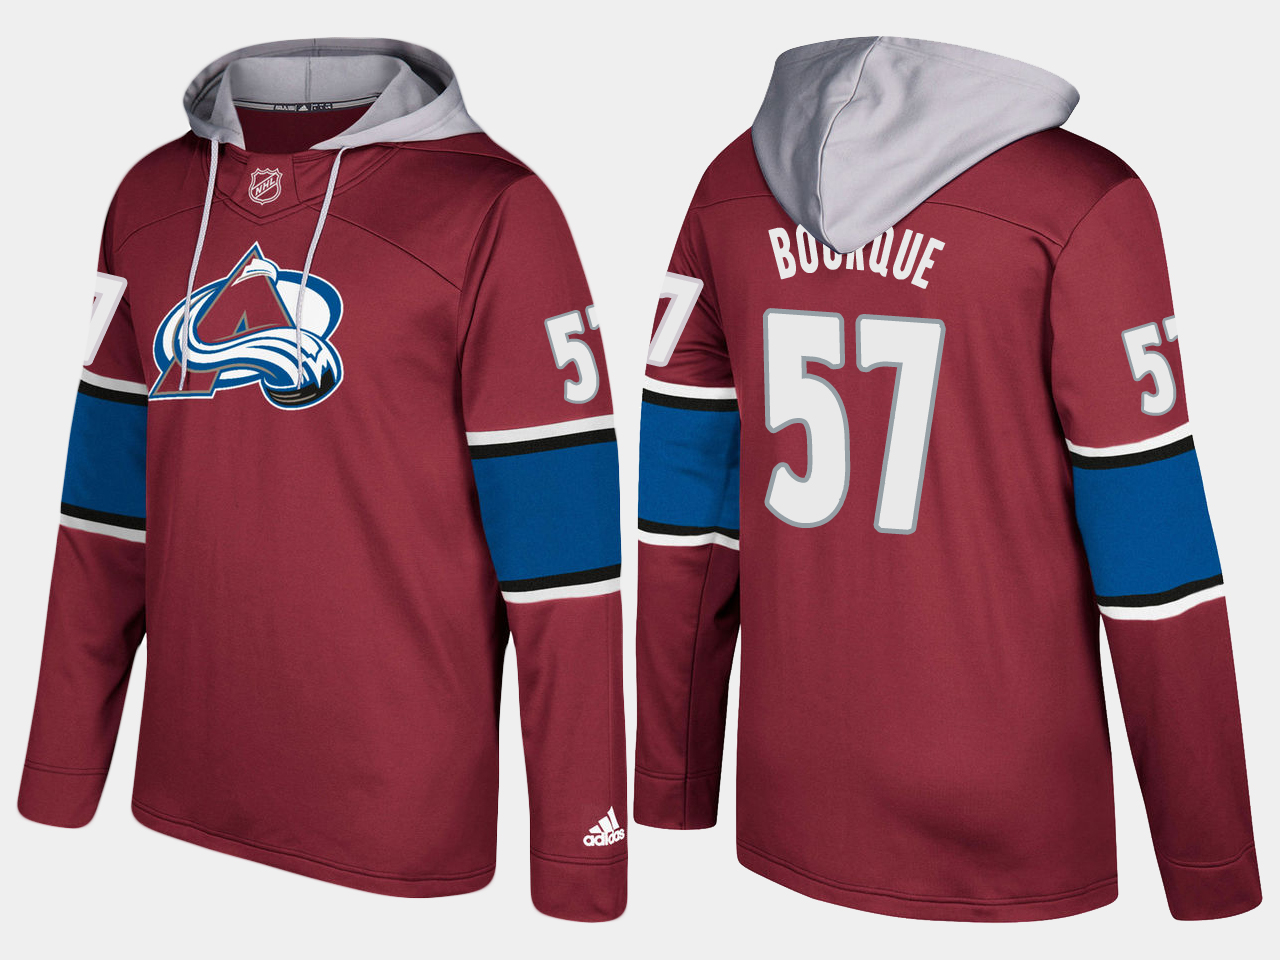 Men NHL Colorado avalanche 57 gabriel bourque burgundy hoodie